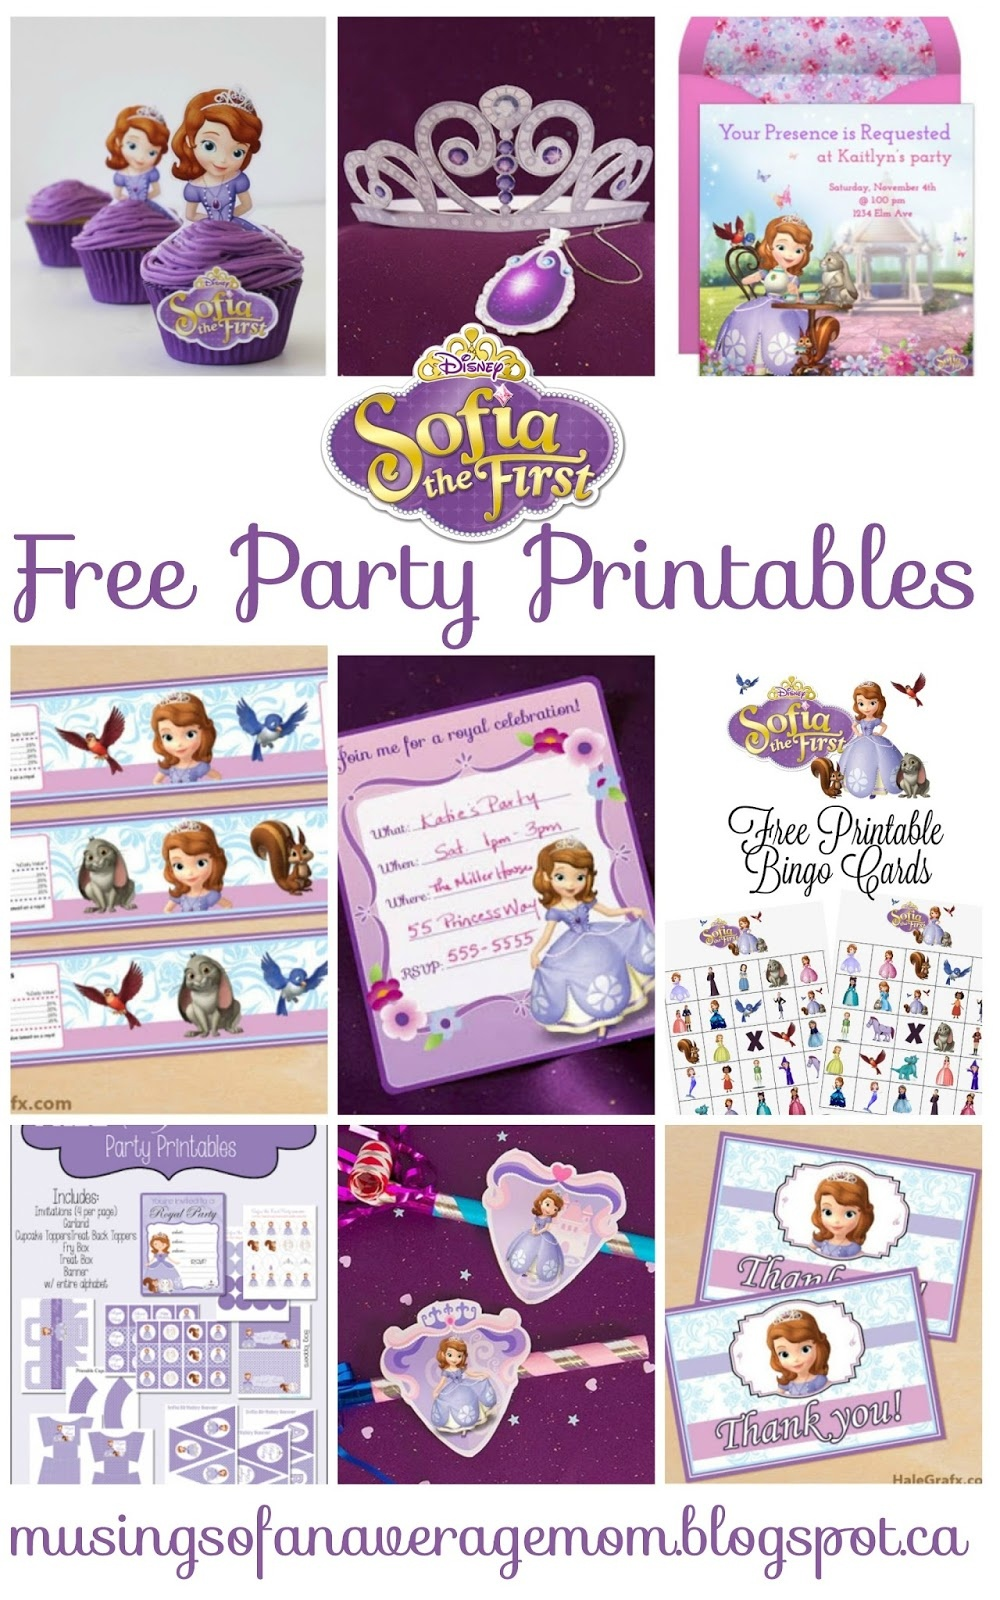 Musings Of An Average Mom: Sofia The First - Party Printables - Sofia The First Cupcake Toppers Free Printable